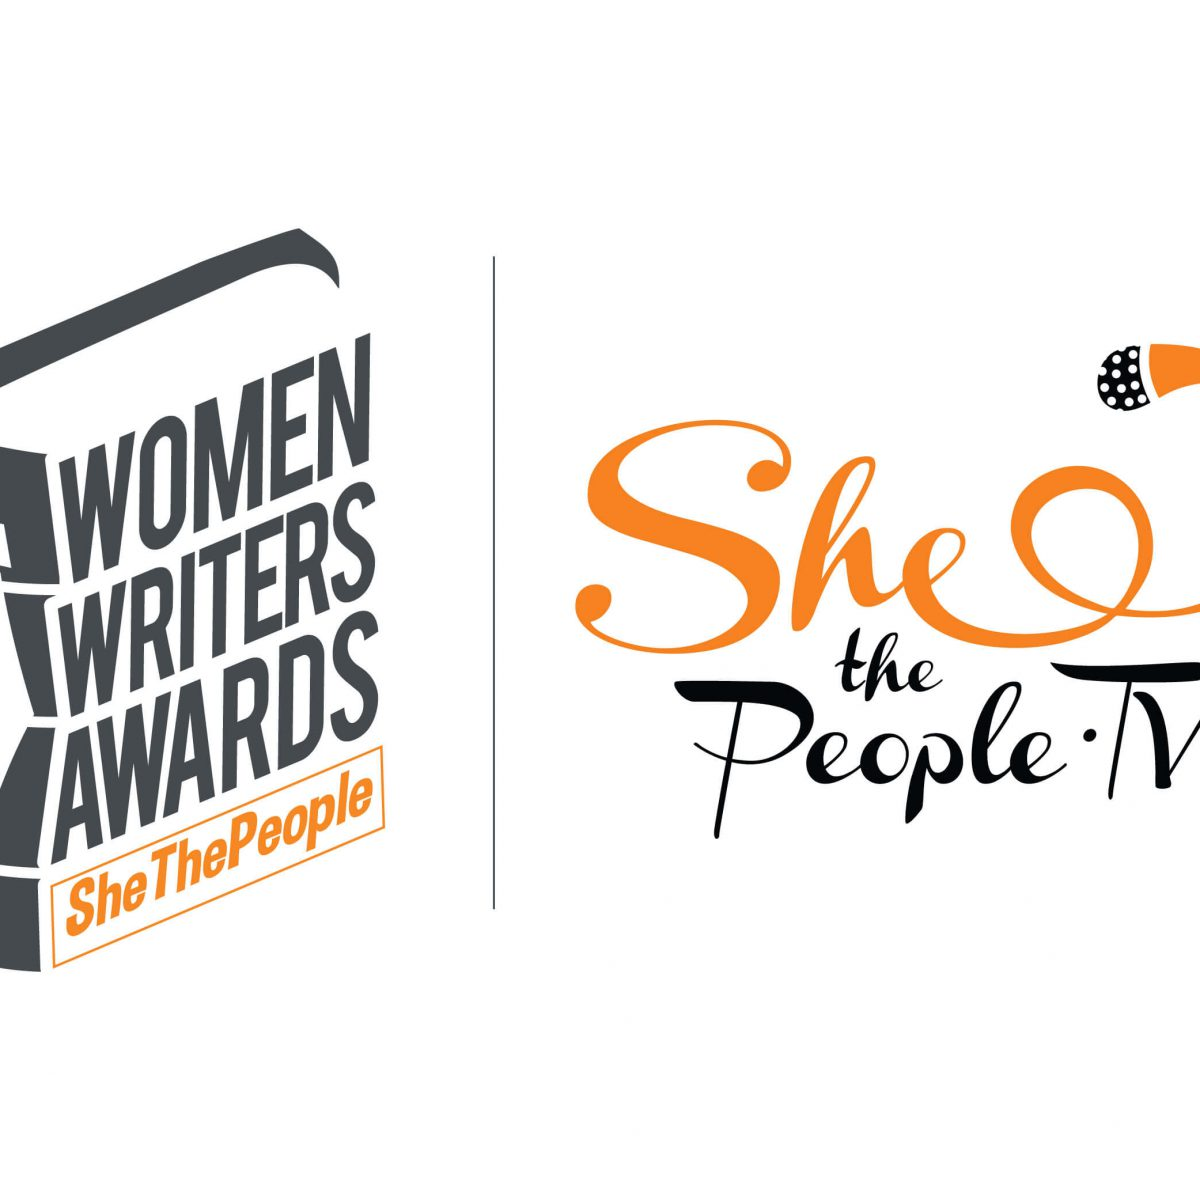 Women writers award